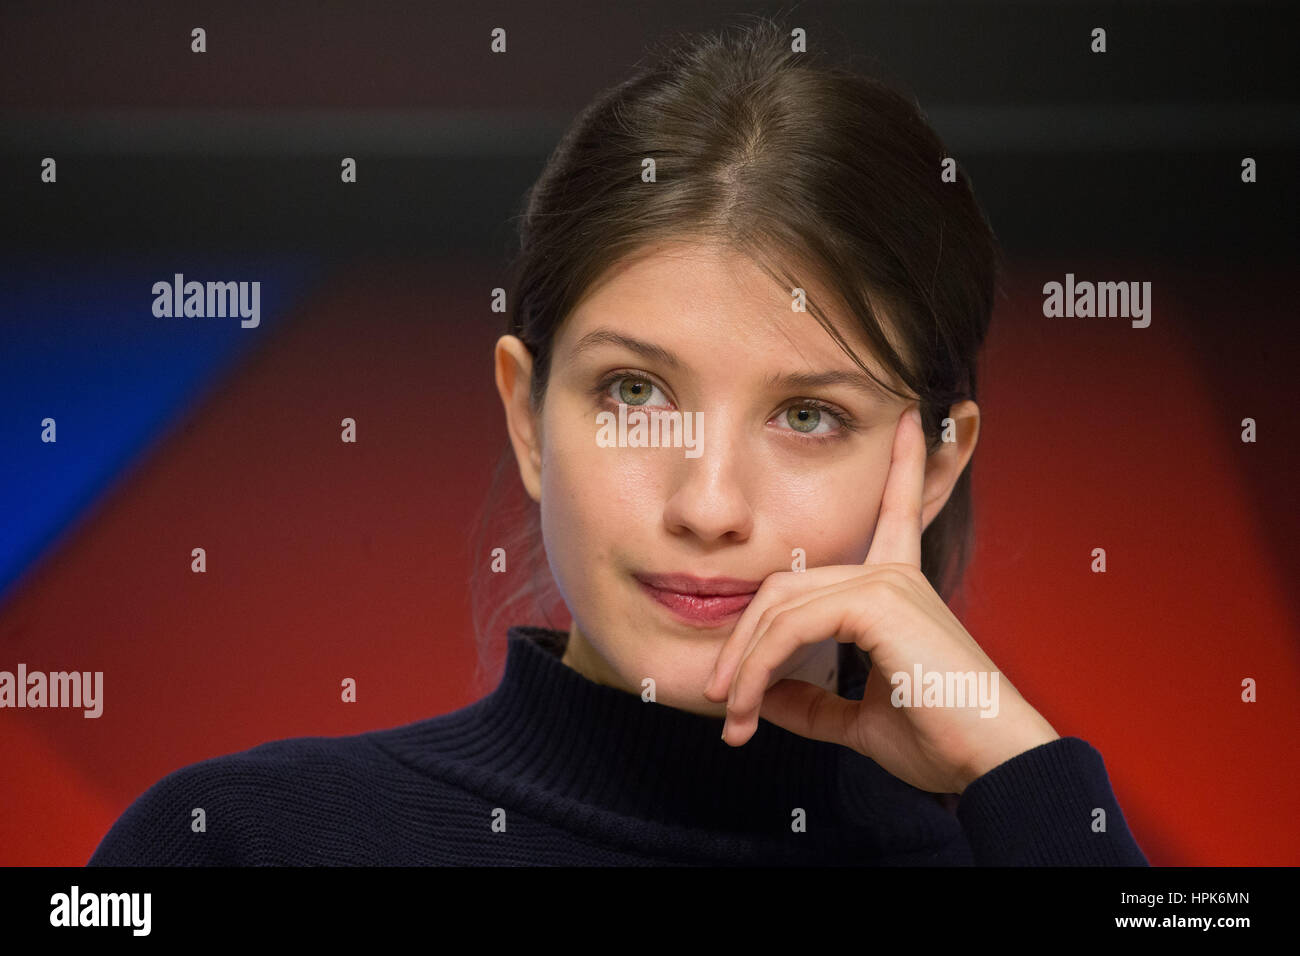 Anna Chipovskaya. Filmography and personal life of a young actress